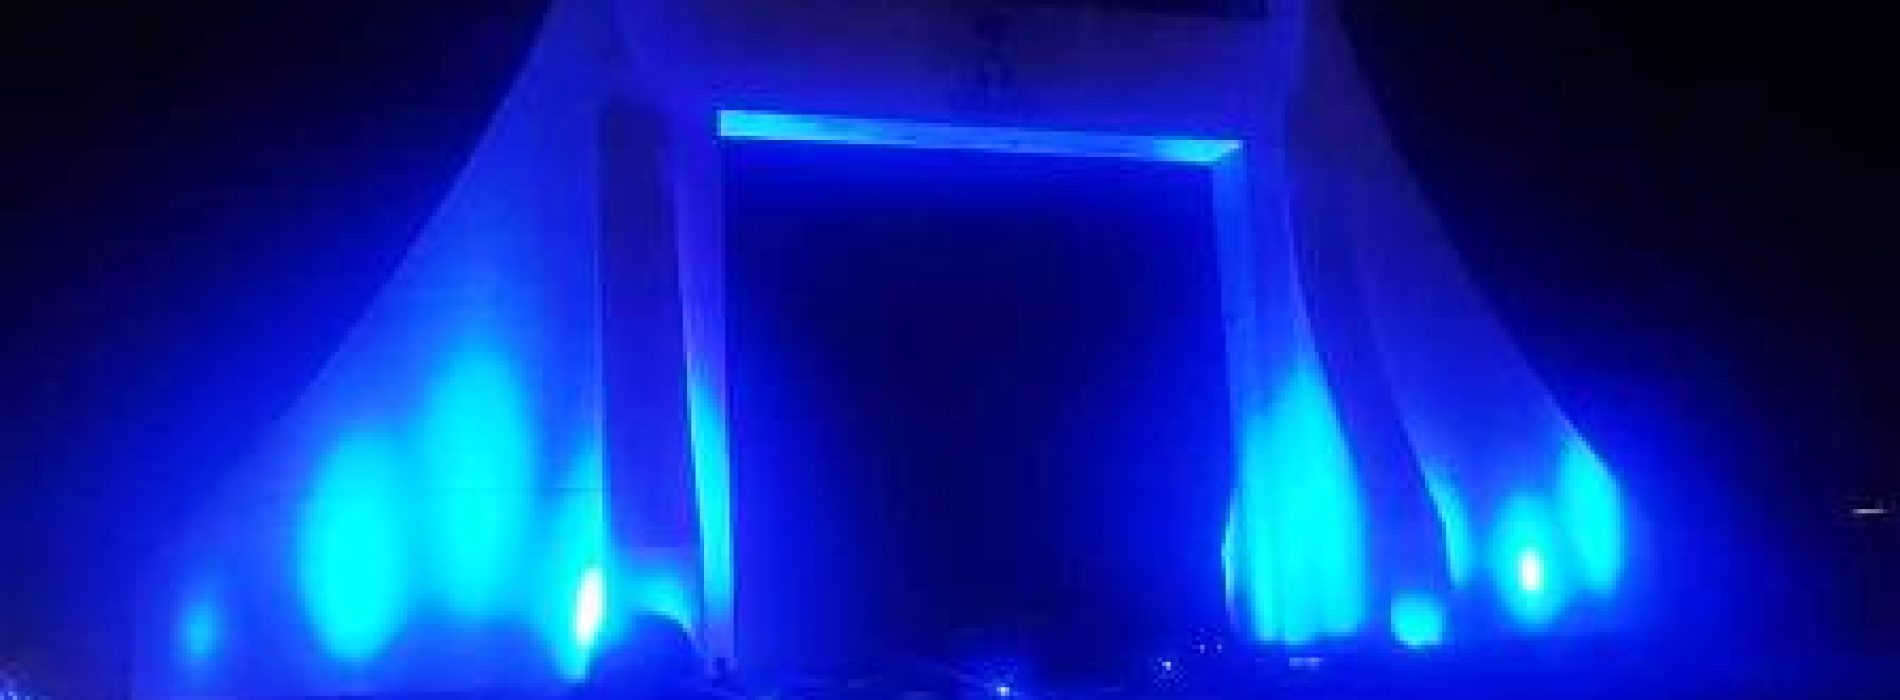 UNICEF lights Abuja gate 'blue' for World Children's Day